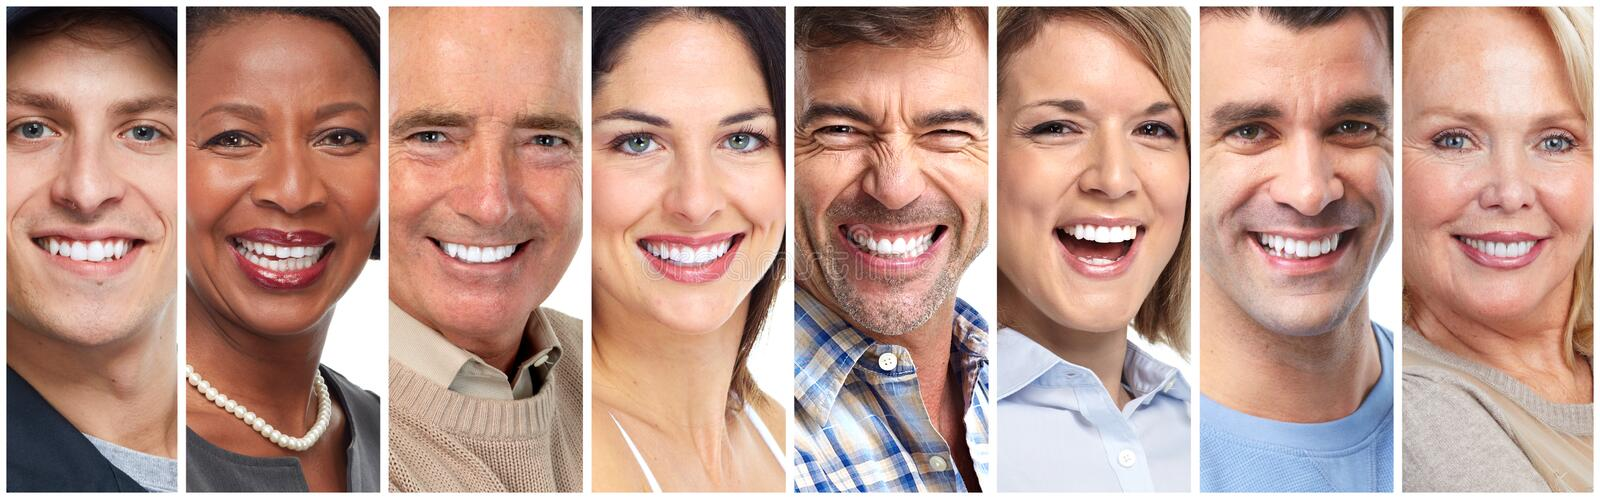 Happy people faces and smiles royalty free stock photo